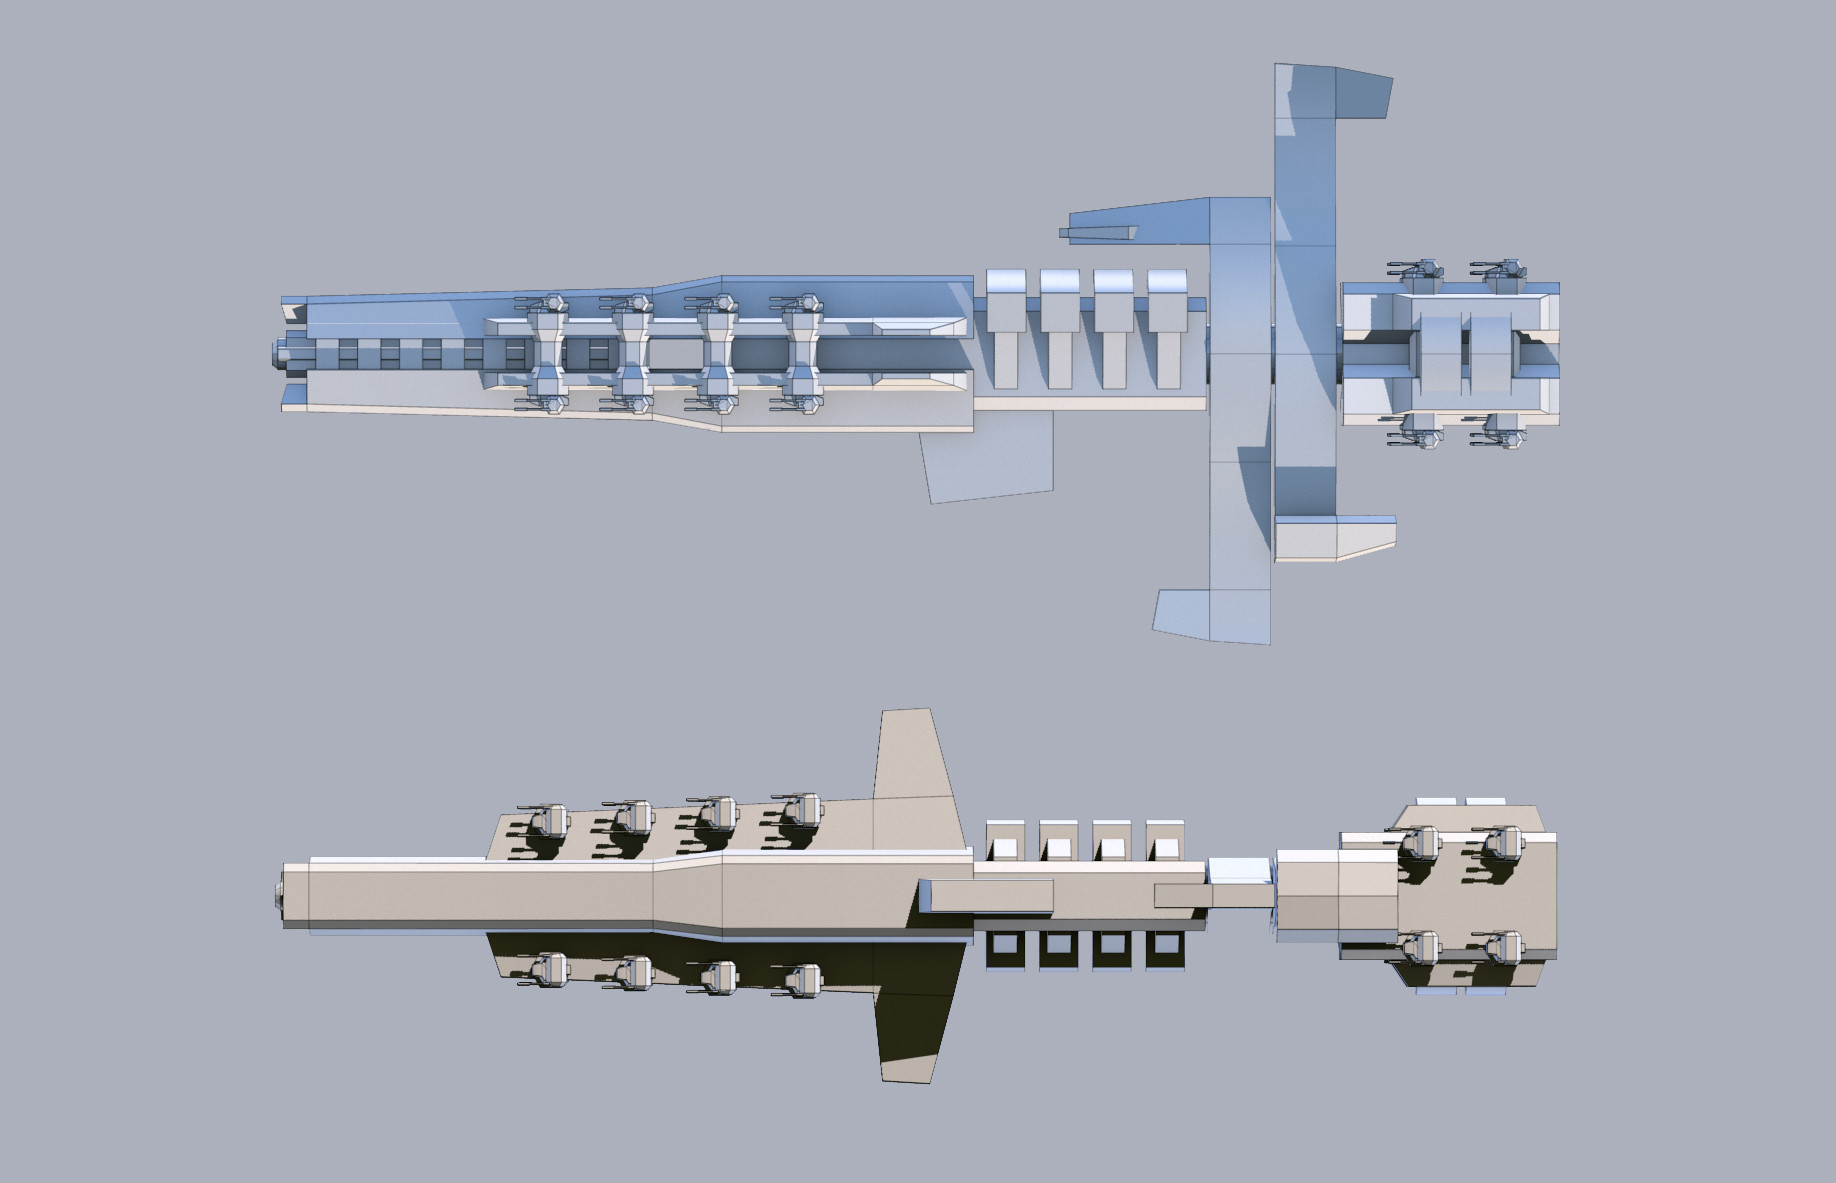 Kelvin liew orthographic